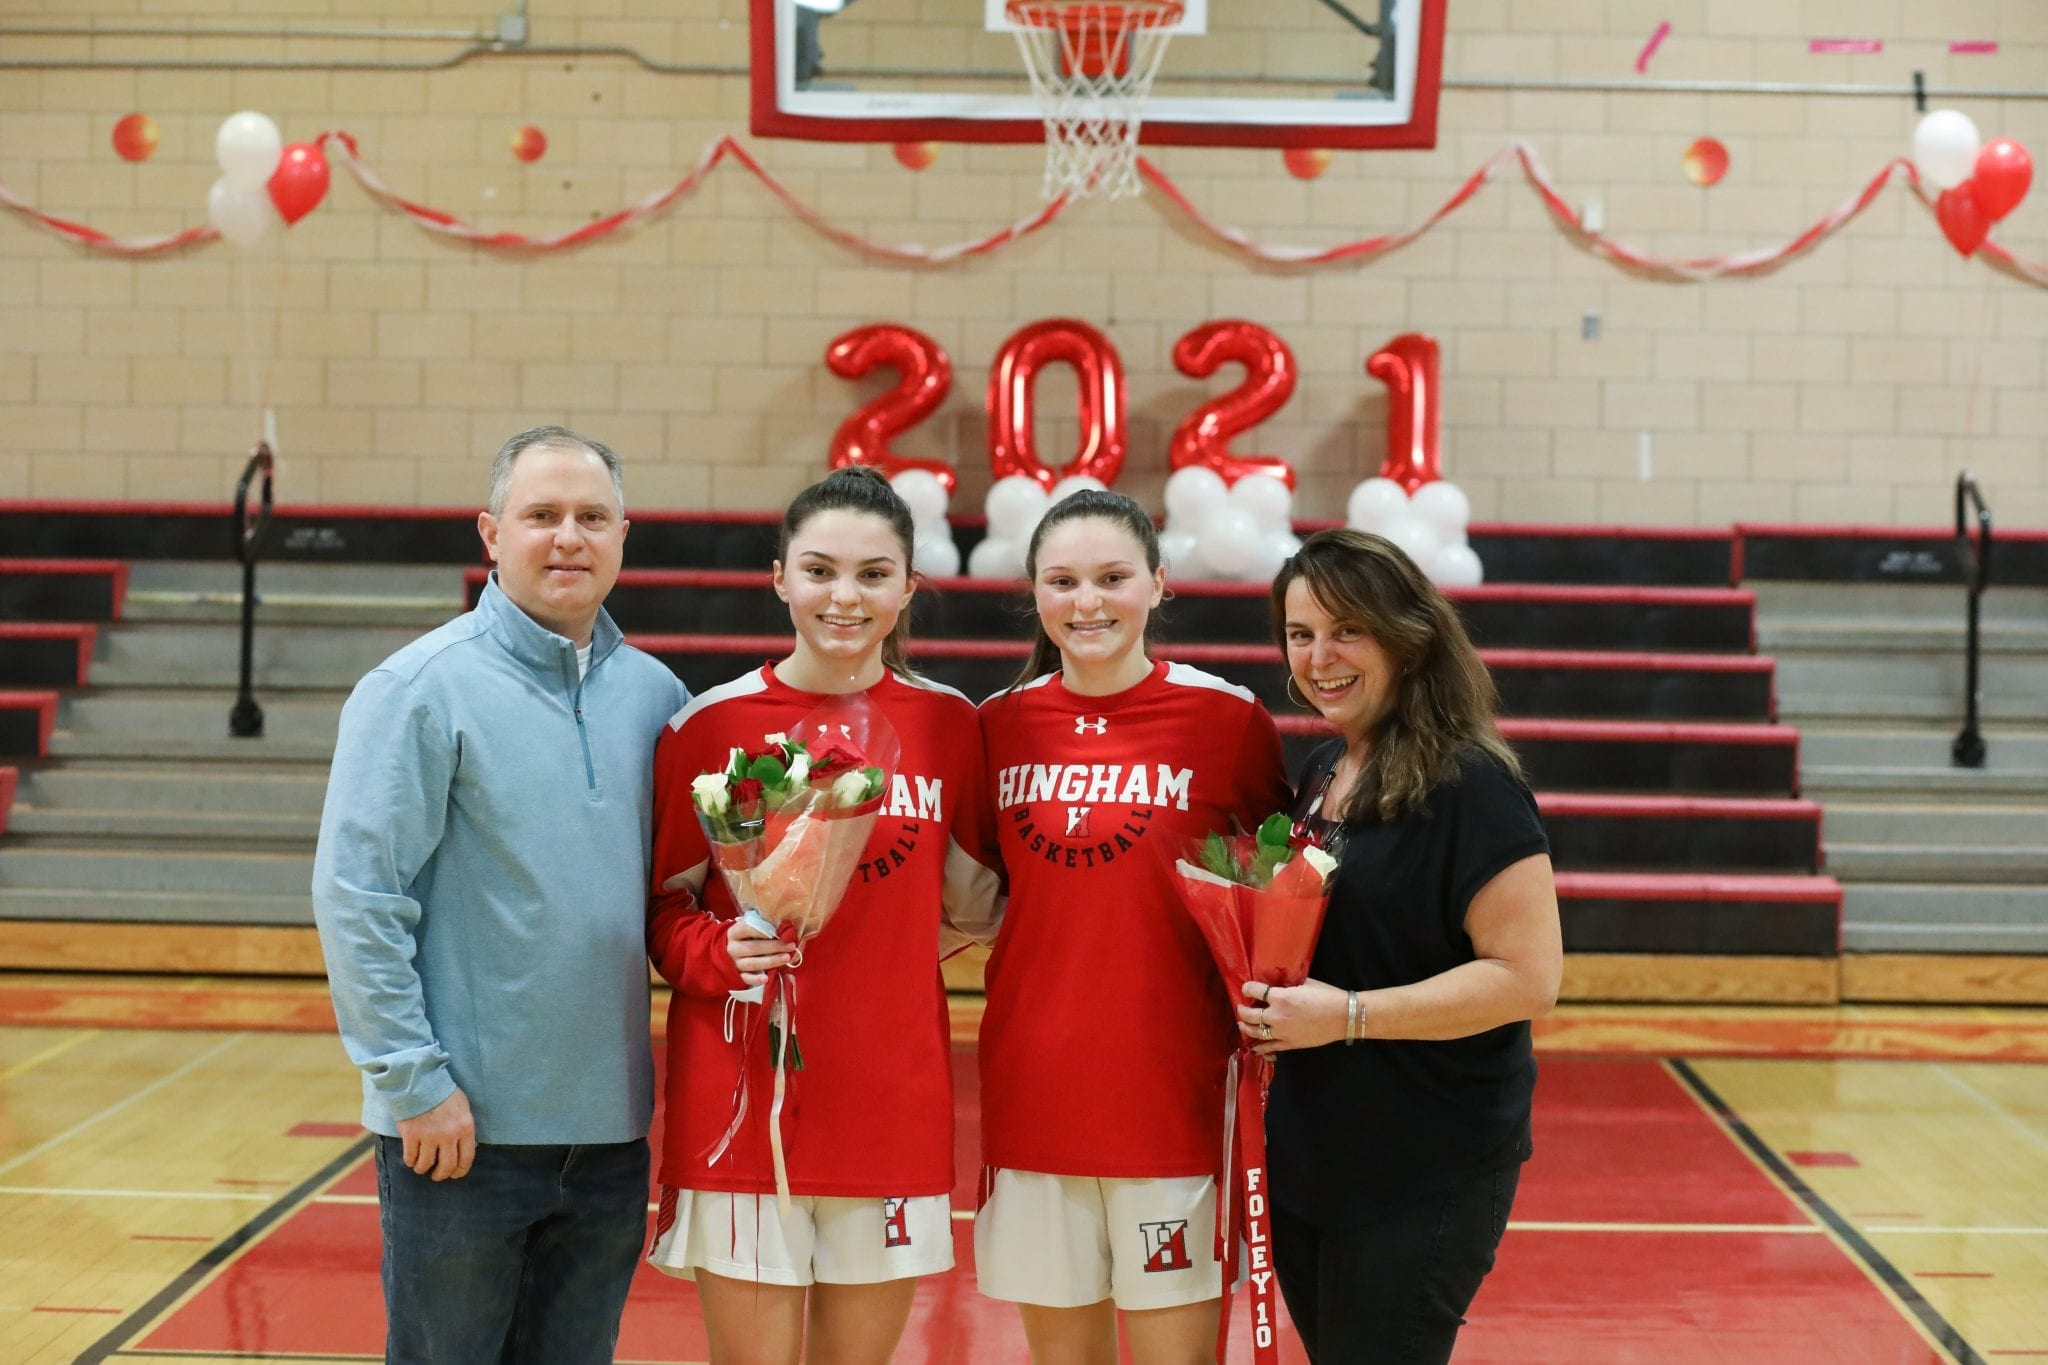 Senior captain Abbey Foley, with her parents Sue and Mike and sister Katie, was honored before the game.